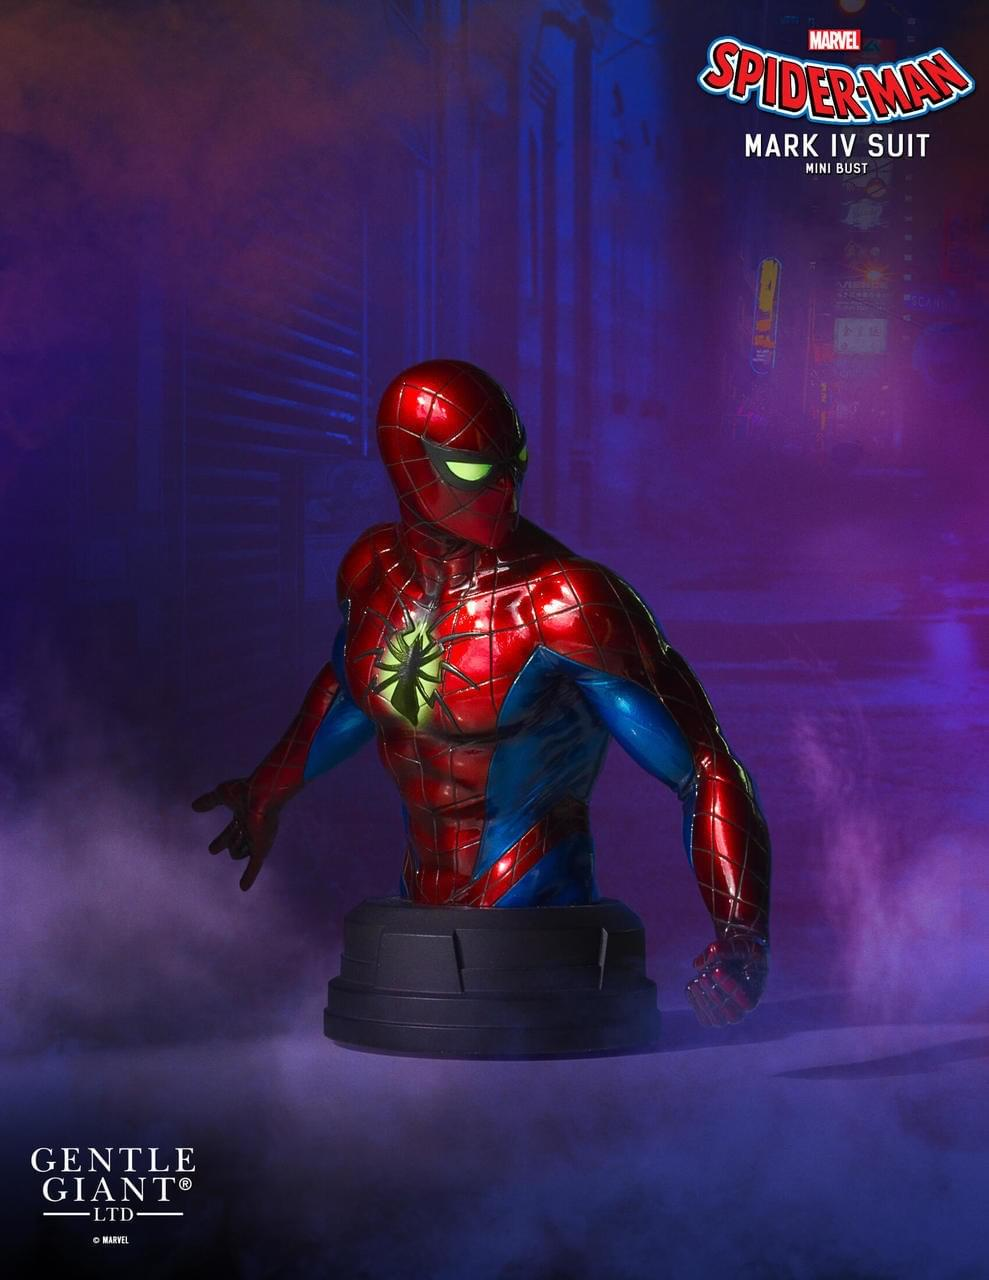 Marvel Spider-Man Collector Statue | Spider-Man Mark IV Suit | 6-Inch Height